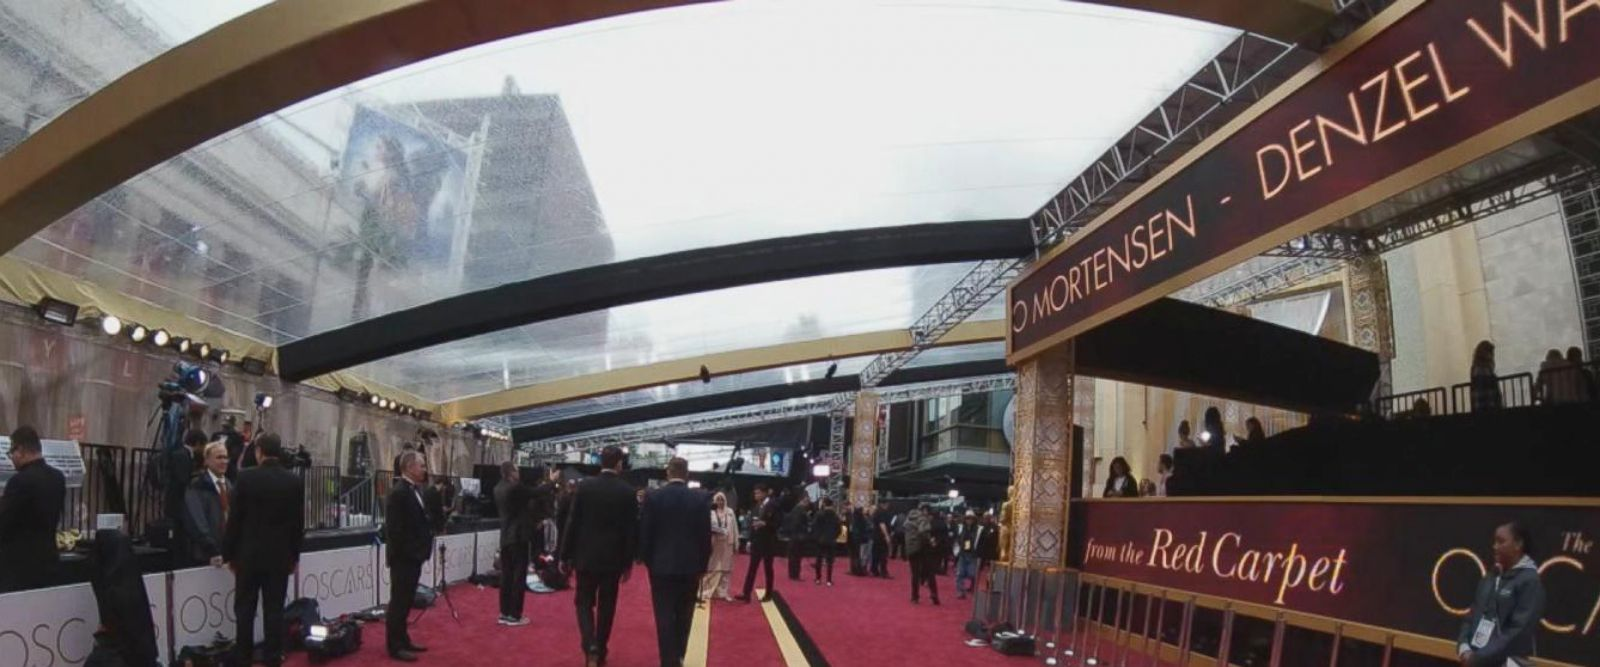 VIDEO: Getting ready for the Oscars